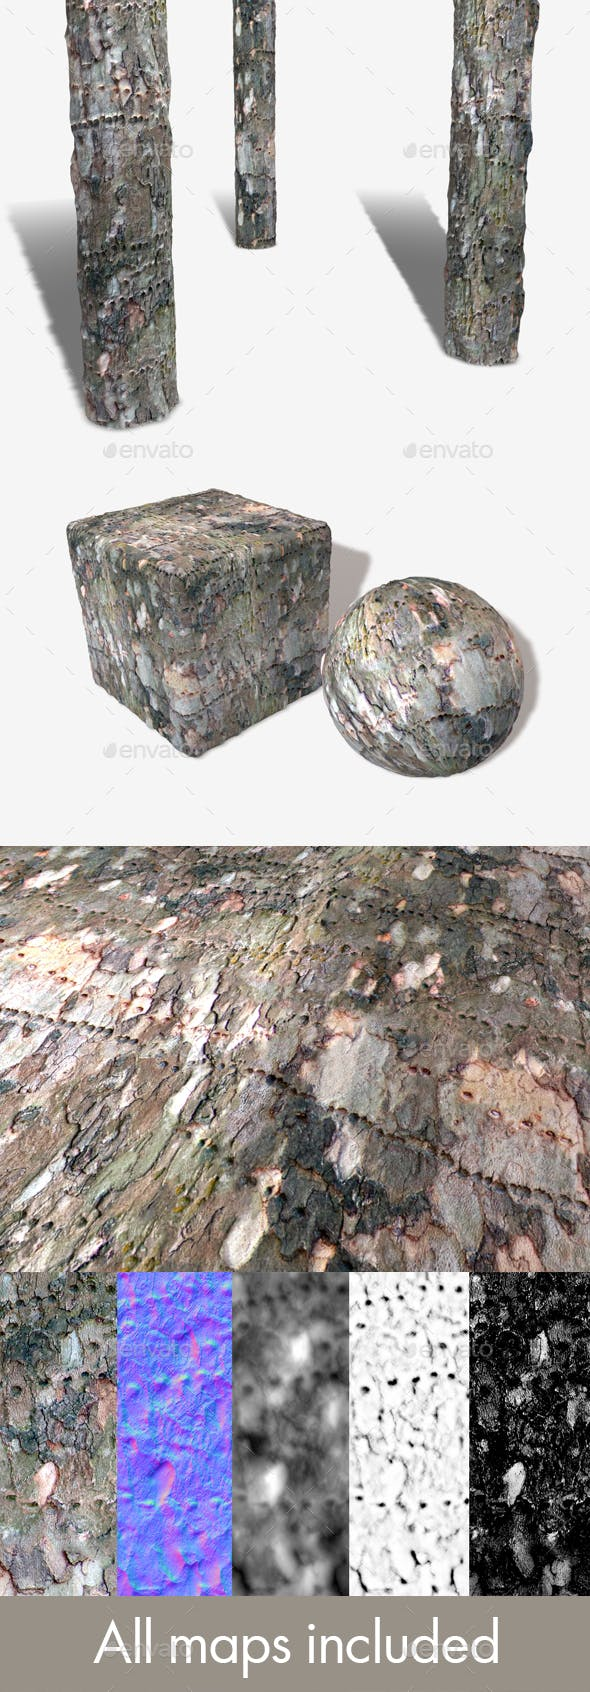 Insect Marked Bark Seamless Texture - 3DOcean Item for Sale